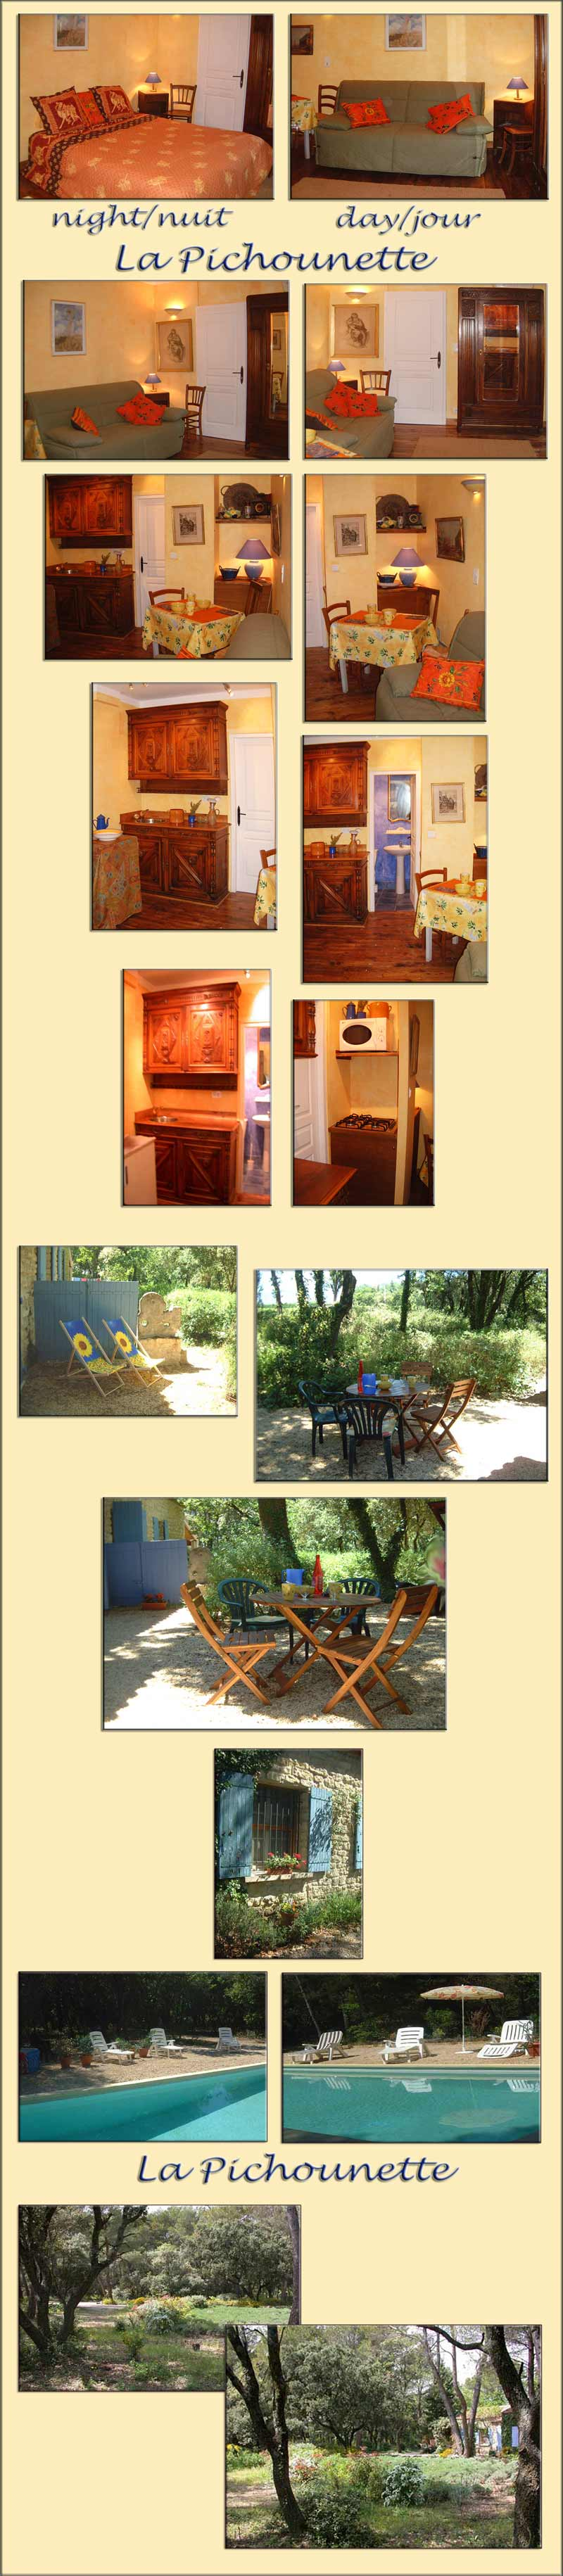 South of France holiday rentals, pool - large photos